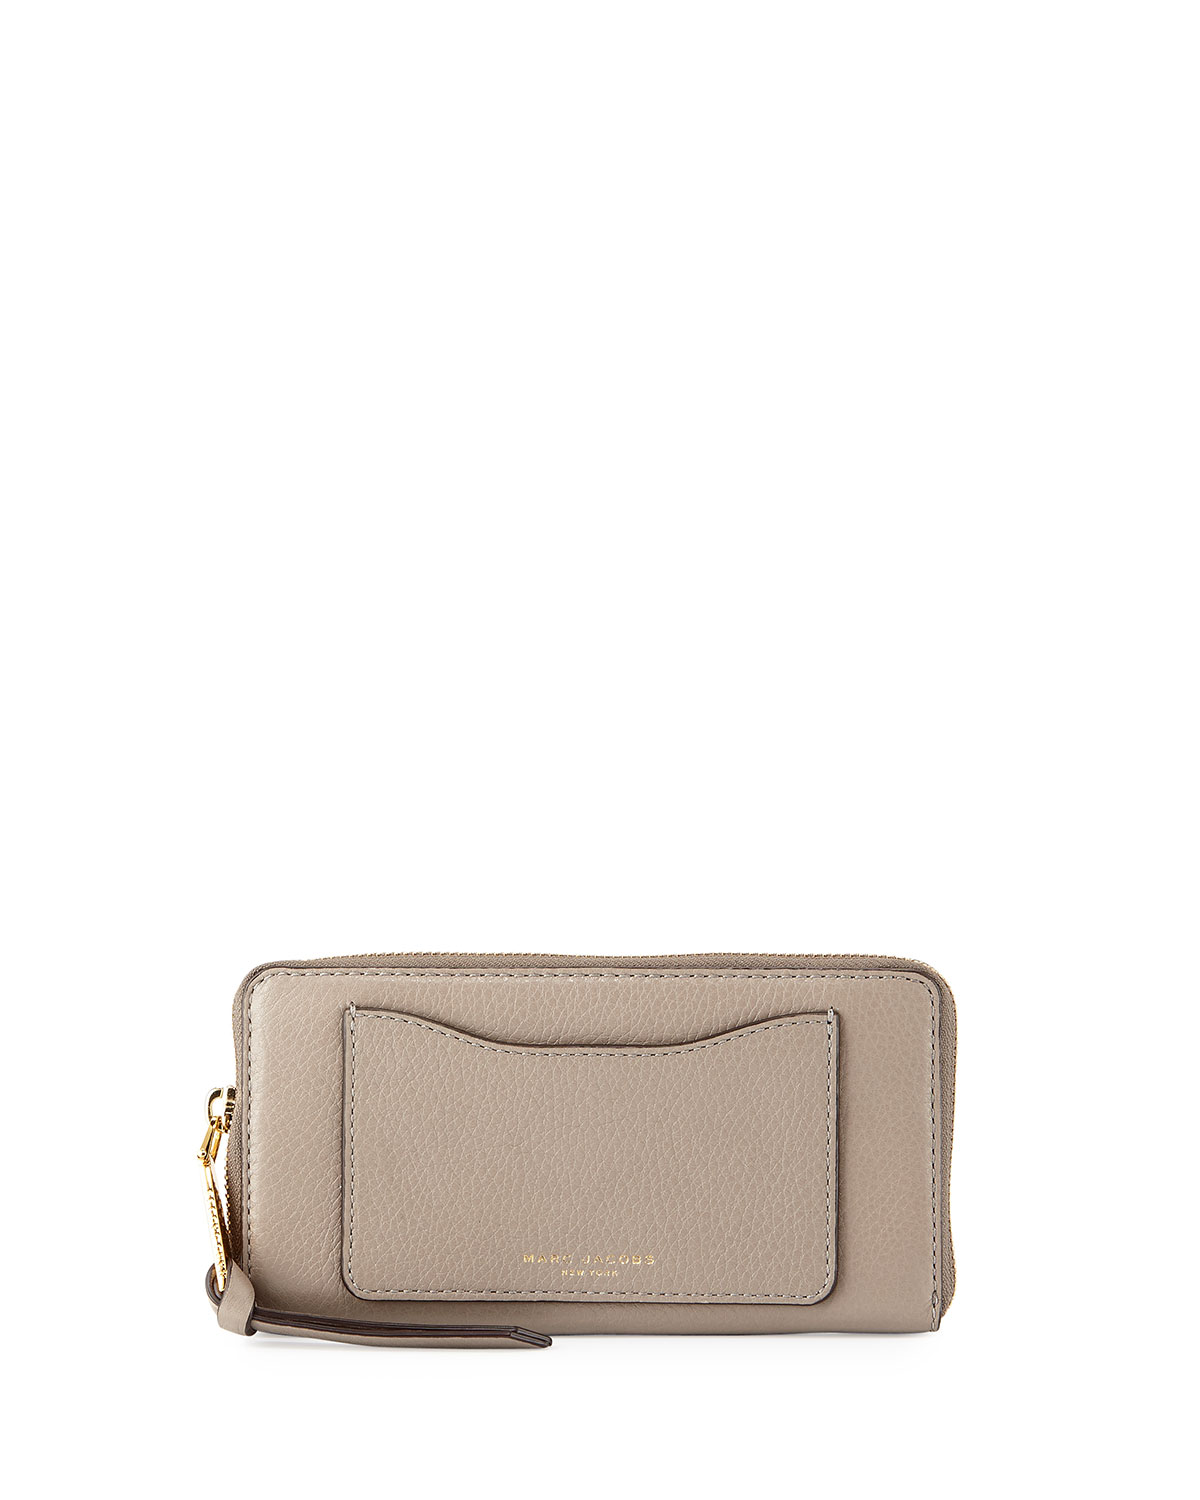 Marc Jacobs Recruit Leather Continental Zip Wallet, Mink   Neiman Marcus ccaf8d4eca